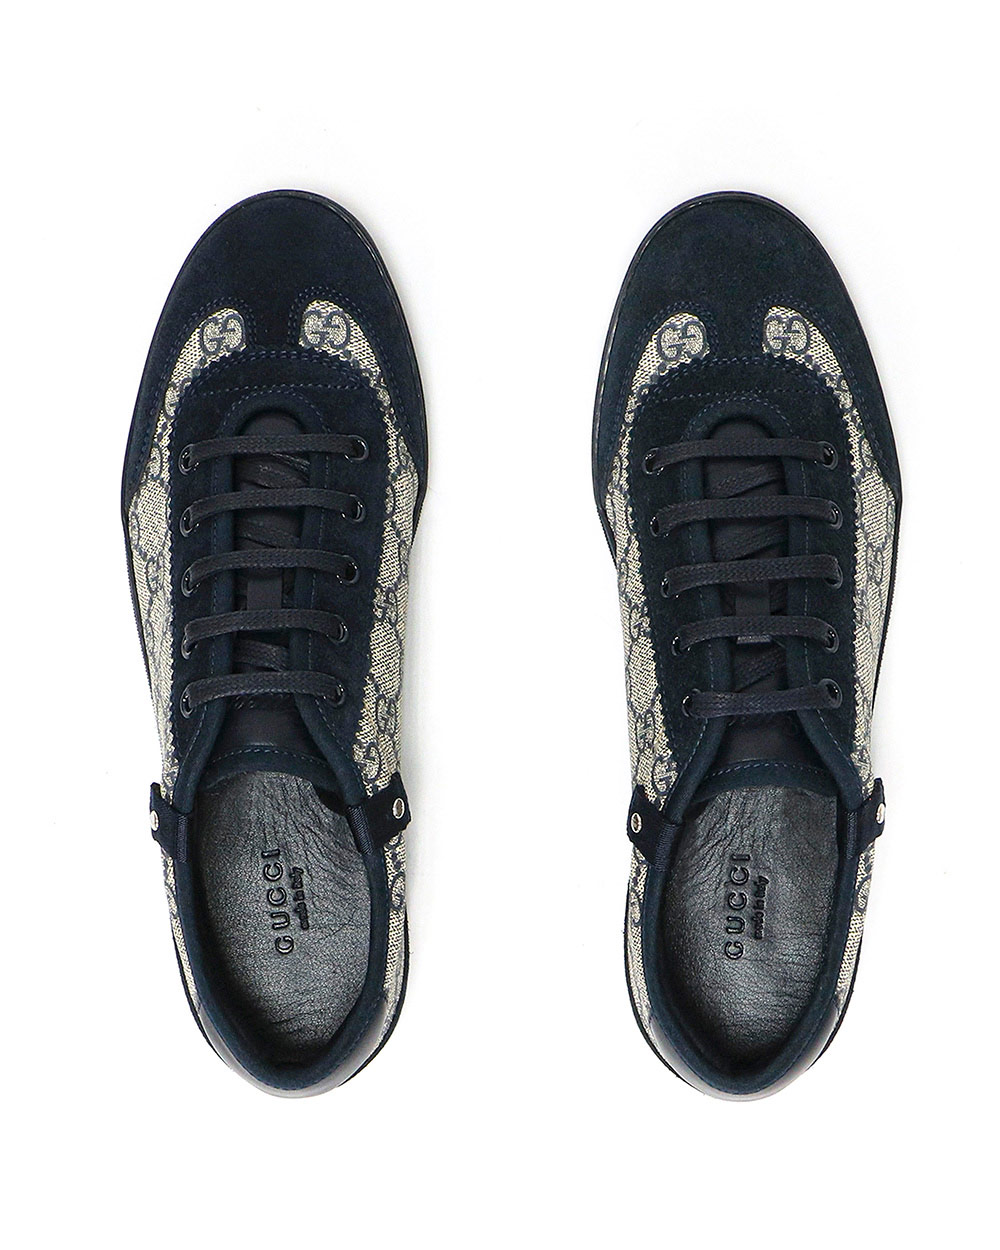 GUCCI Logo Sneakers 246338KGDQ0 3